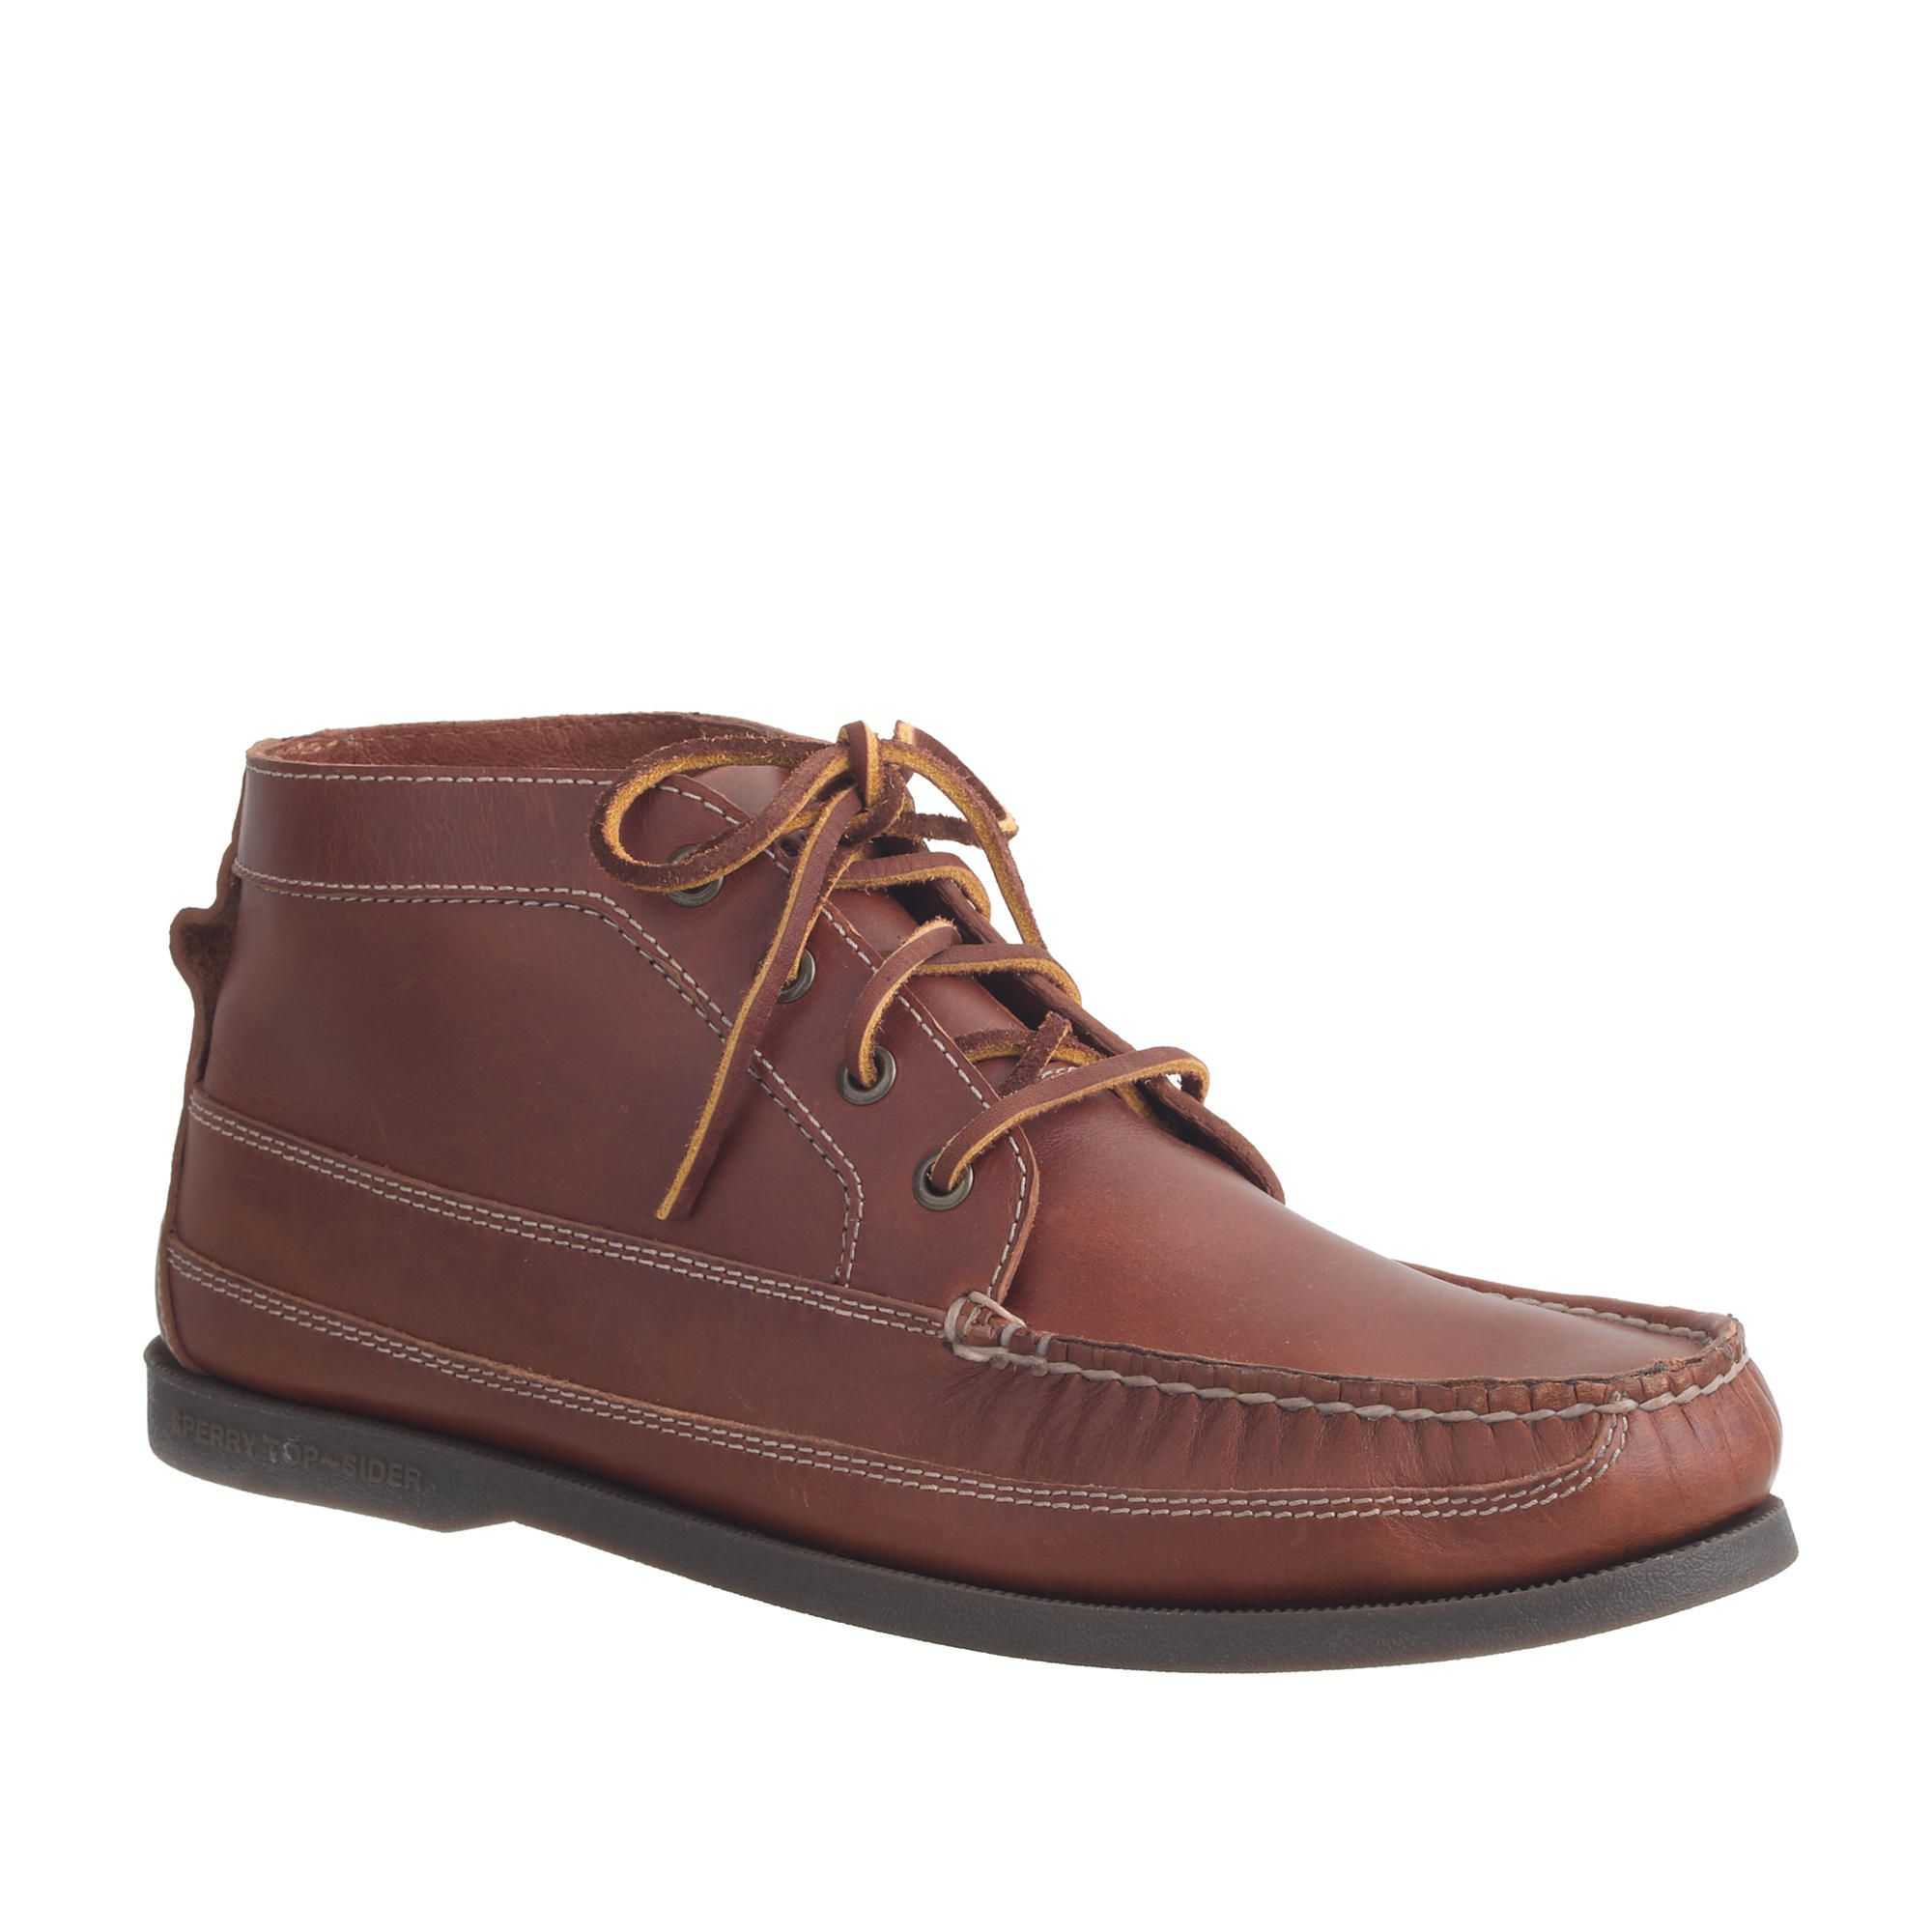 Men's Sperry Top-Sider® for J.Crew leather chukka boots : casual boots